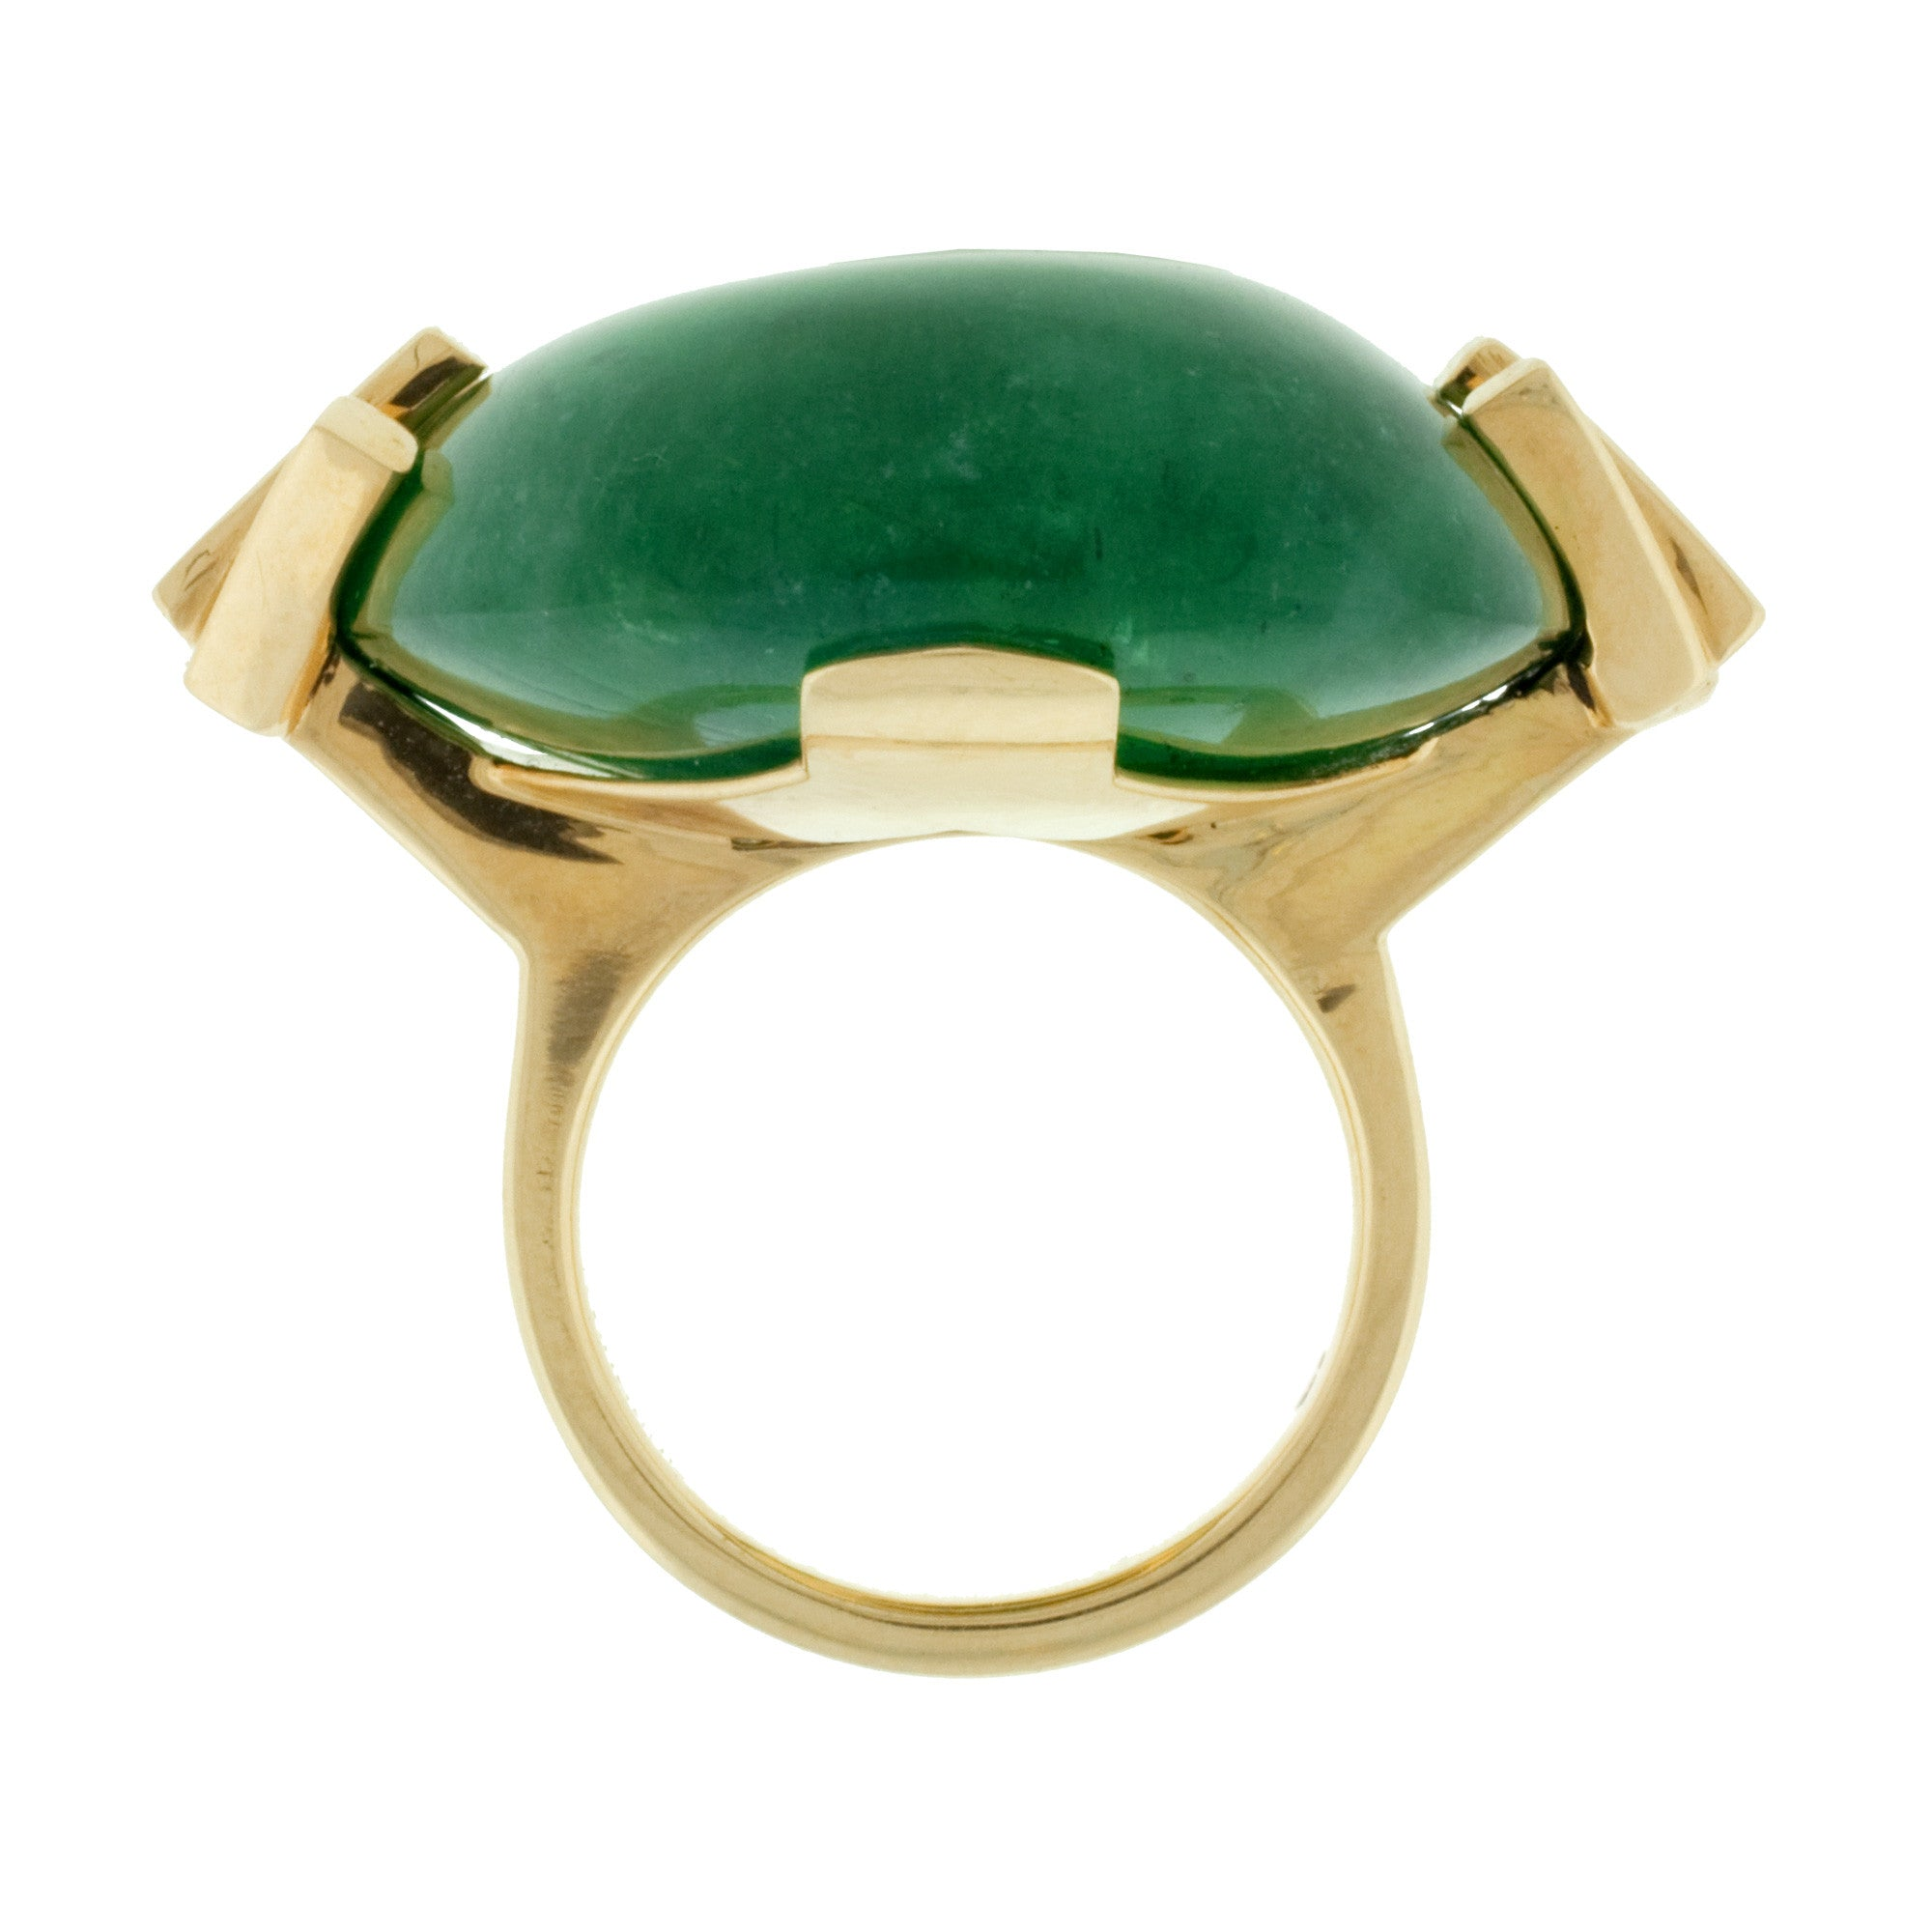 jewelry ring rings nordstrom emerald products bezel siena diamond baguette emeral bqgrhu